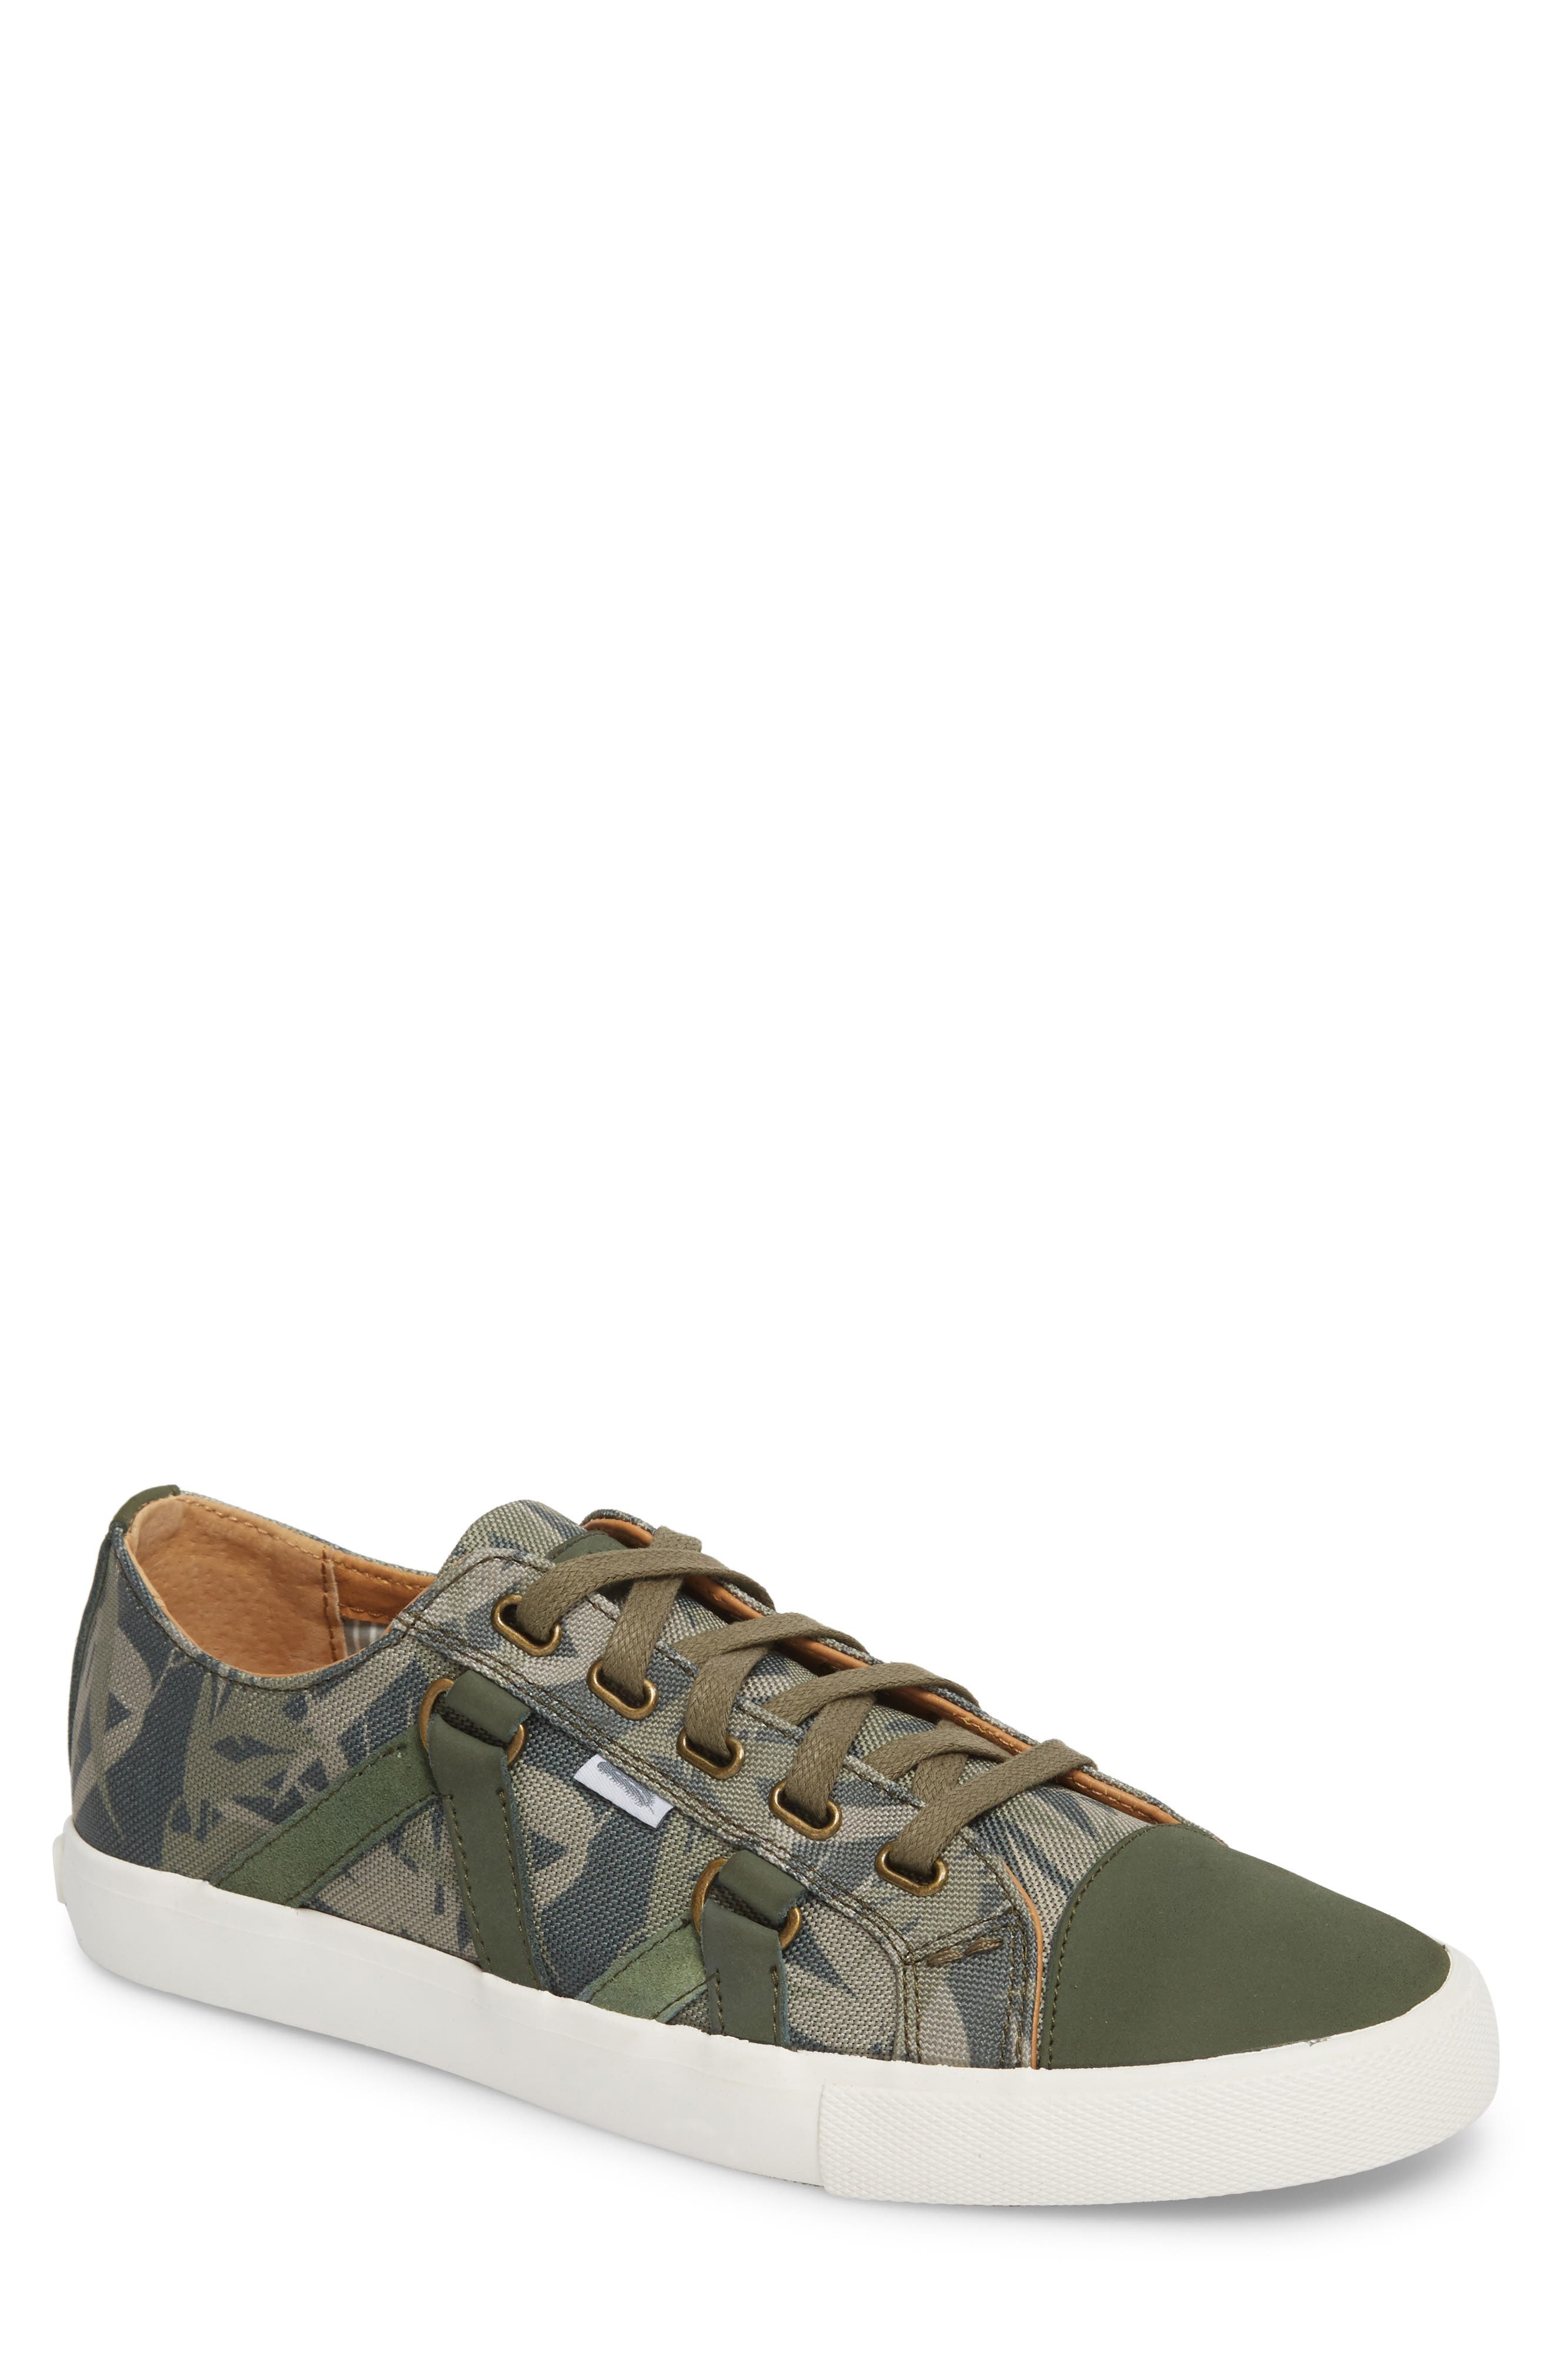 Signature Low Top Sneaker,                             Main thumbnail 1, color,                             Bamboo Canvas